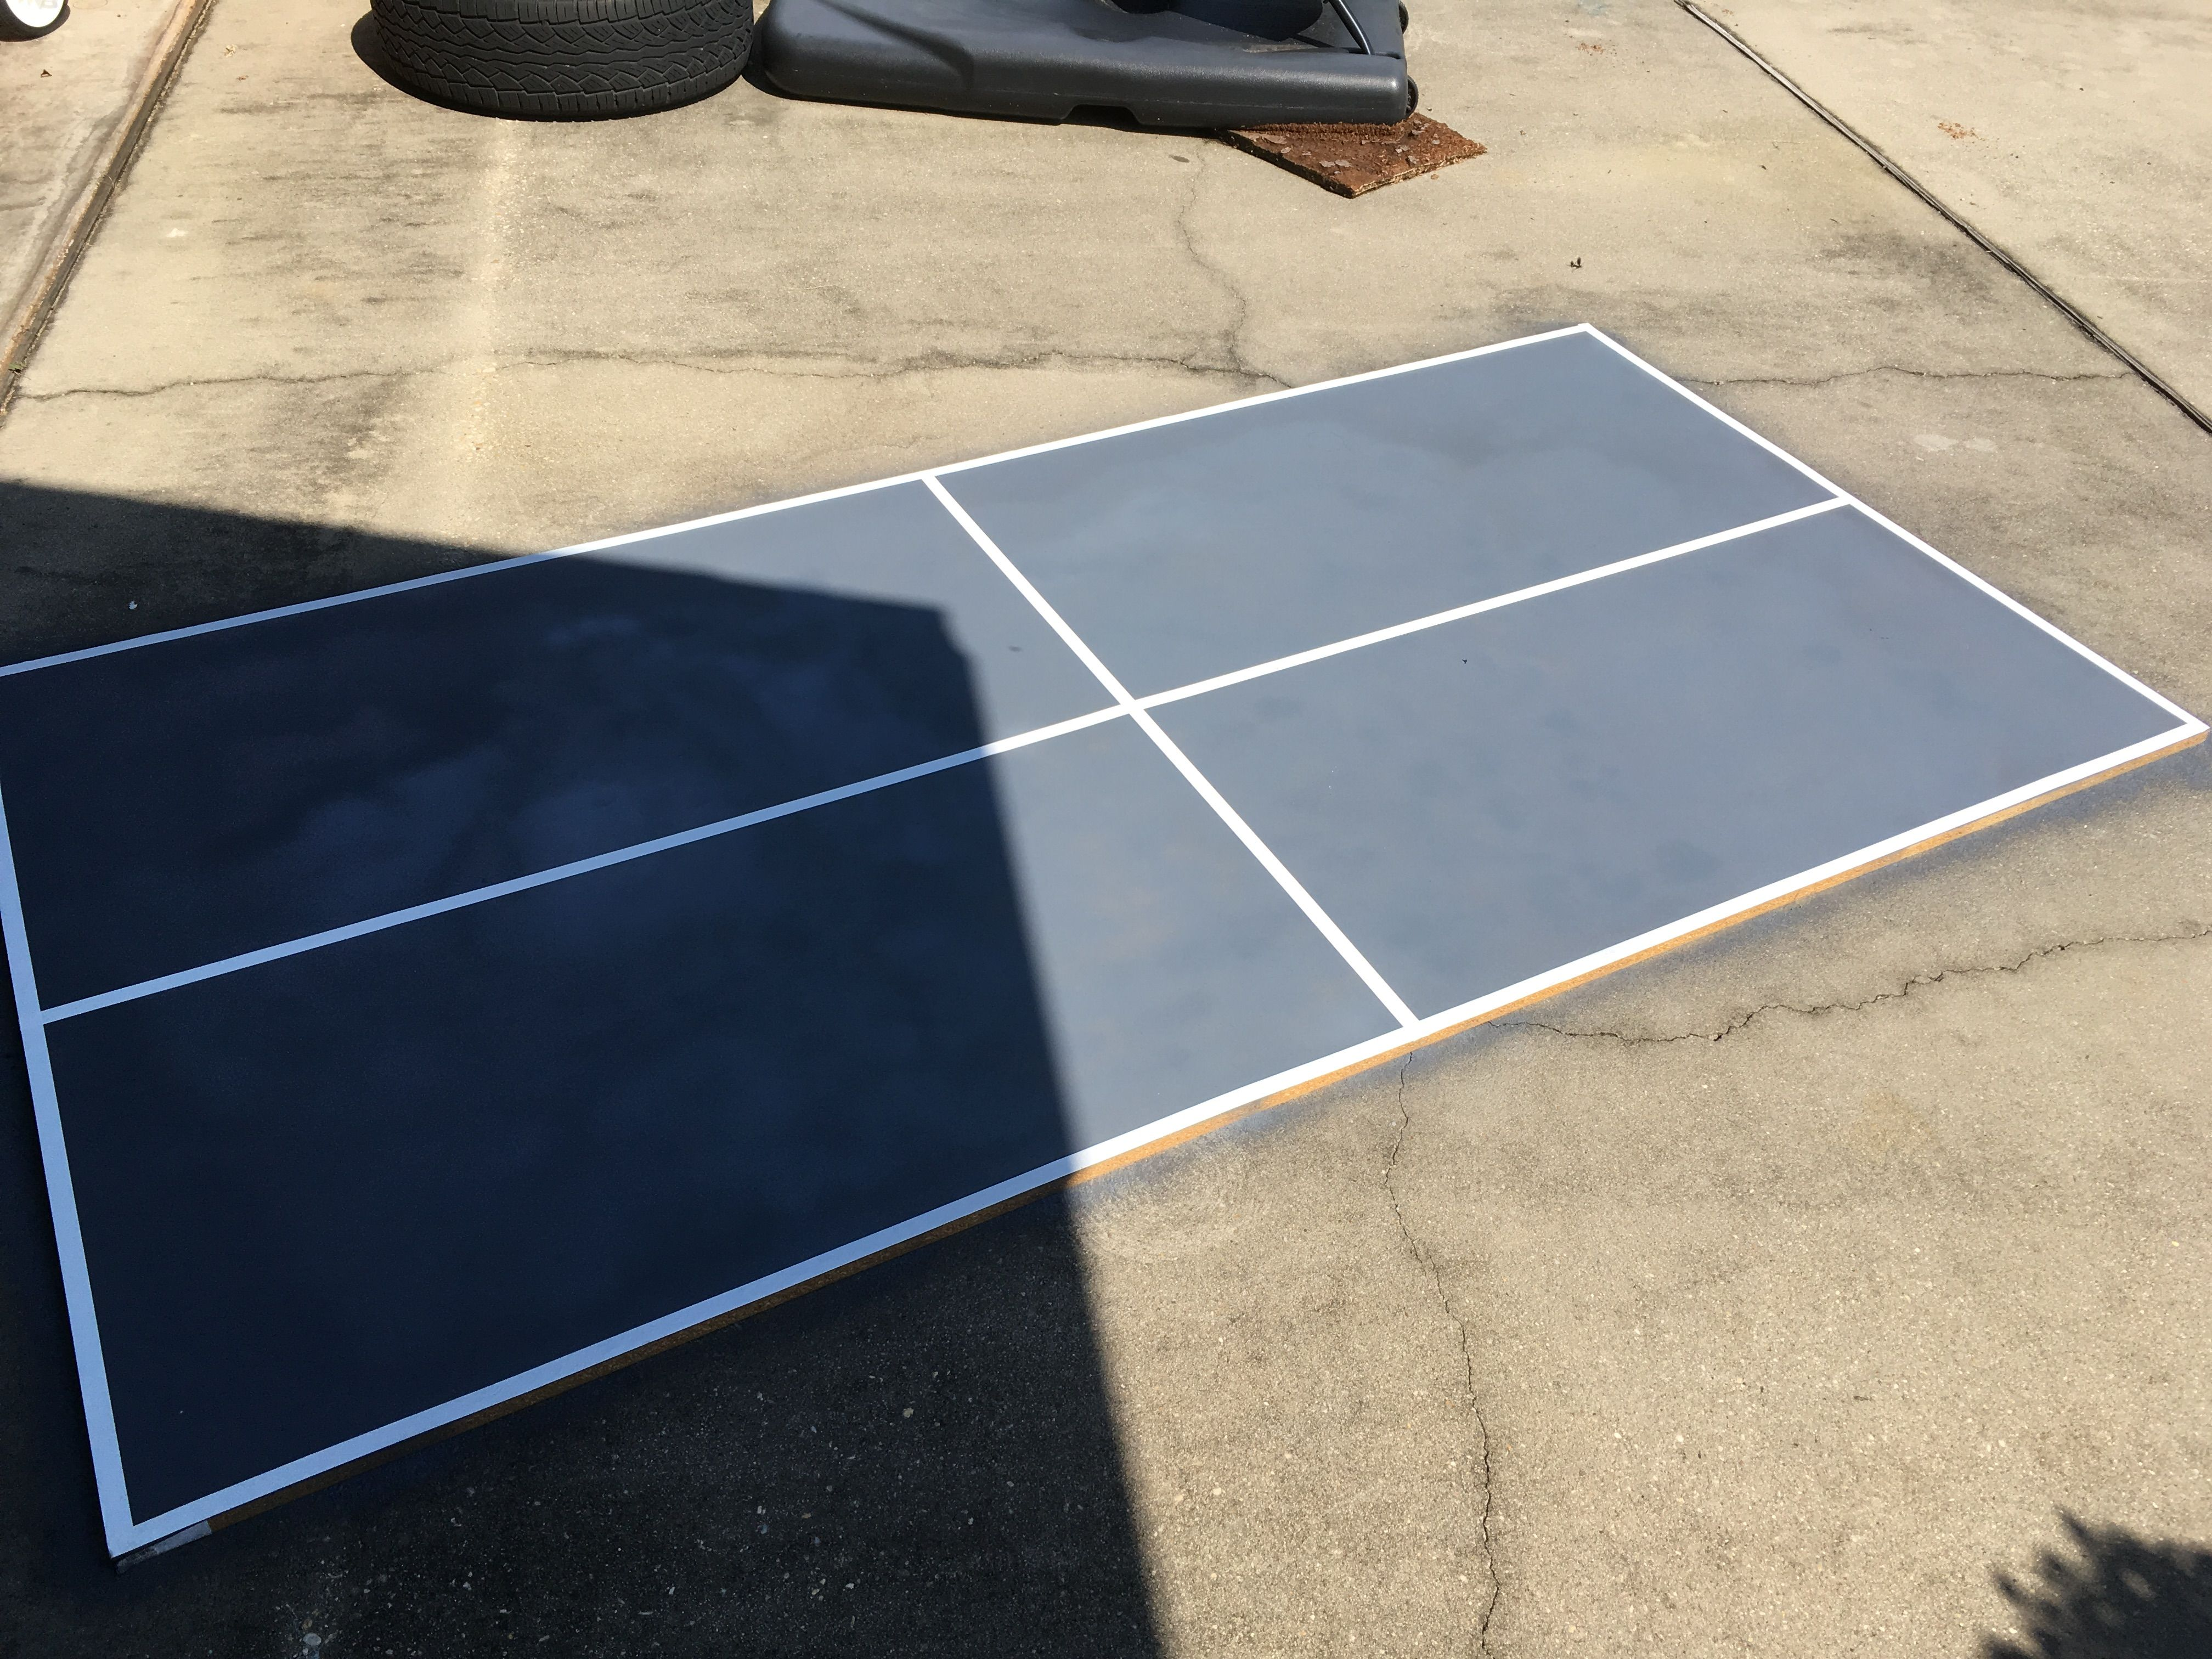 Diy Ping Pong Table Top Under 25 8x4 3 4 Grey Paint And White Electrical Tape Sits Perfect On Back Pa Ping Pong Table Top Ping Pong Table Diy Diy Table Top